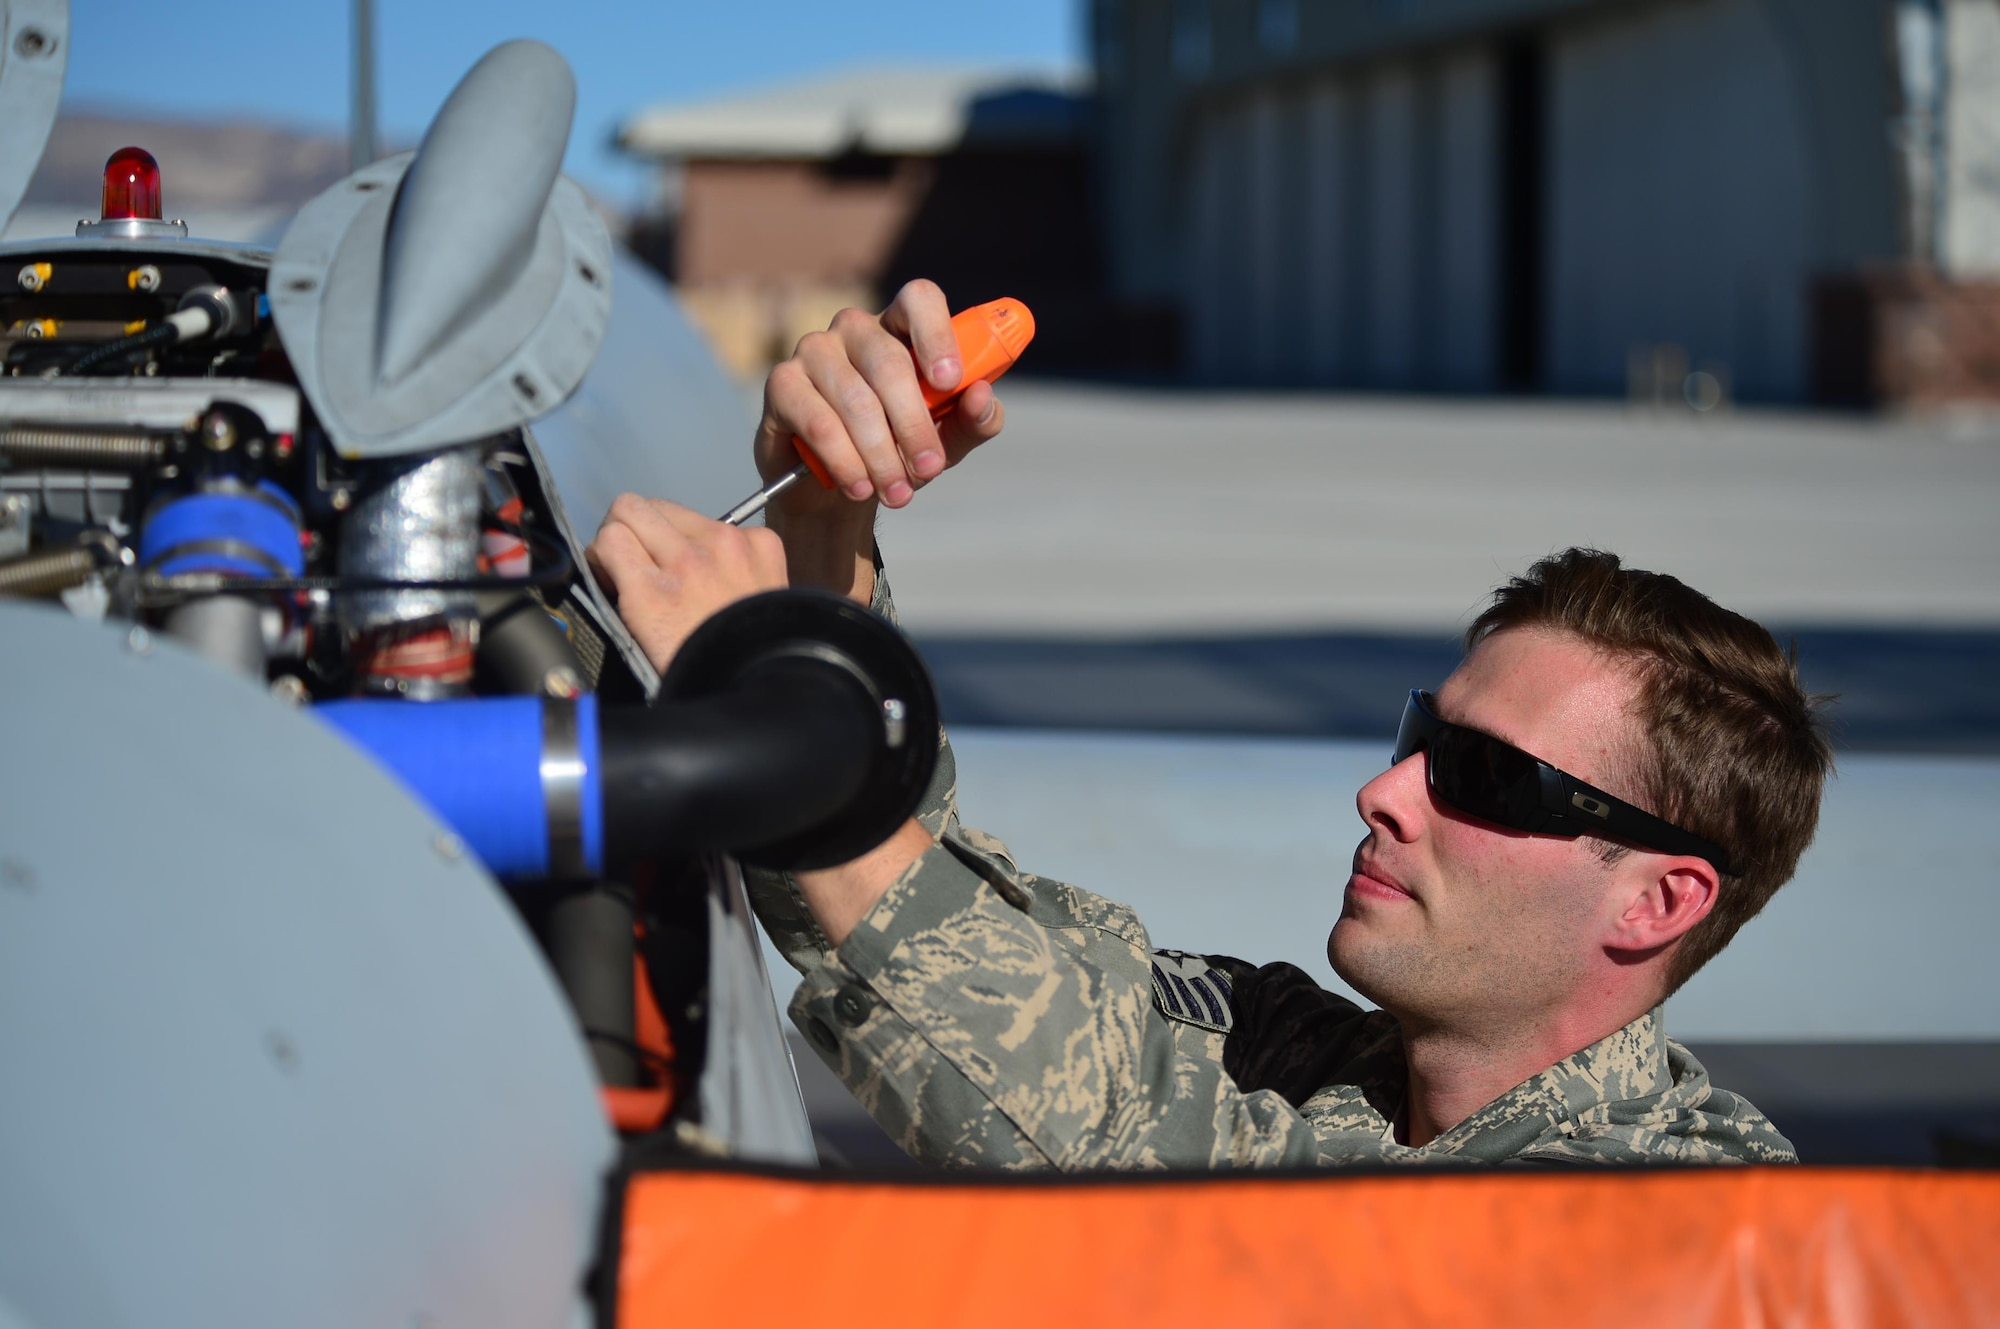 A crew chief from the 432nd Aircraft Maintenance Squadron de-panels an MQ-1 Predator remotely piloted aircraft during a post-flight inspection Nov. 1, 2013. Predators can perform the following missions and tasks: intelligence, surveillance, reconnaissance, close air support, combat search and rescue, precision strike, buddy-lase, convoy/raid overwatch, route clearance, target development, and terminal air guidance. The MQ-9 Reaper and MQ-1 Predator fleet surpassed 2 million cumulative flight hours on Oct. 22, 2013.